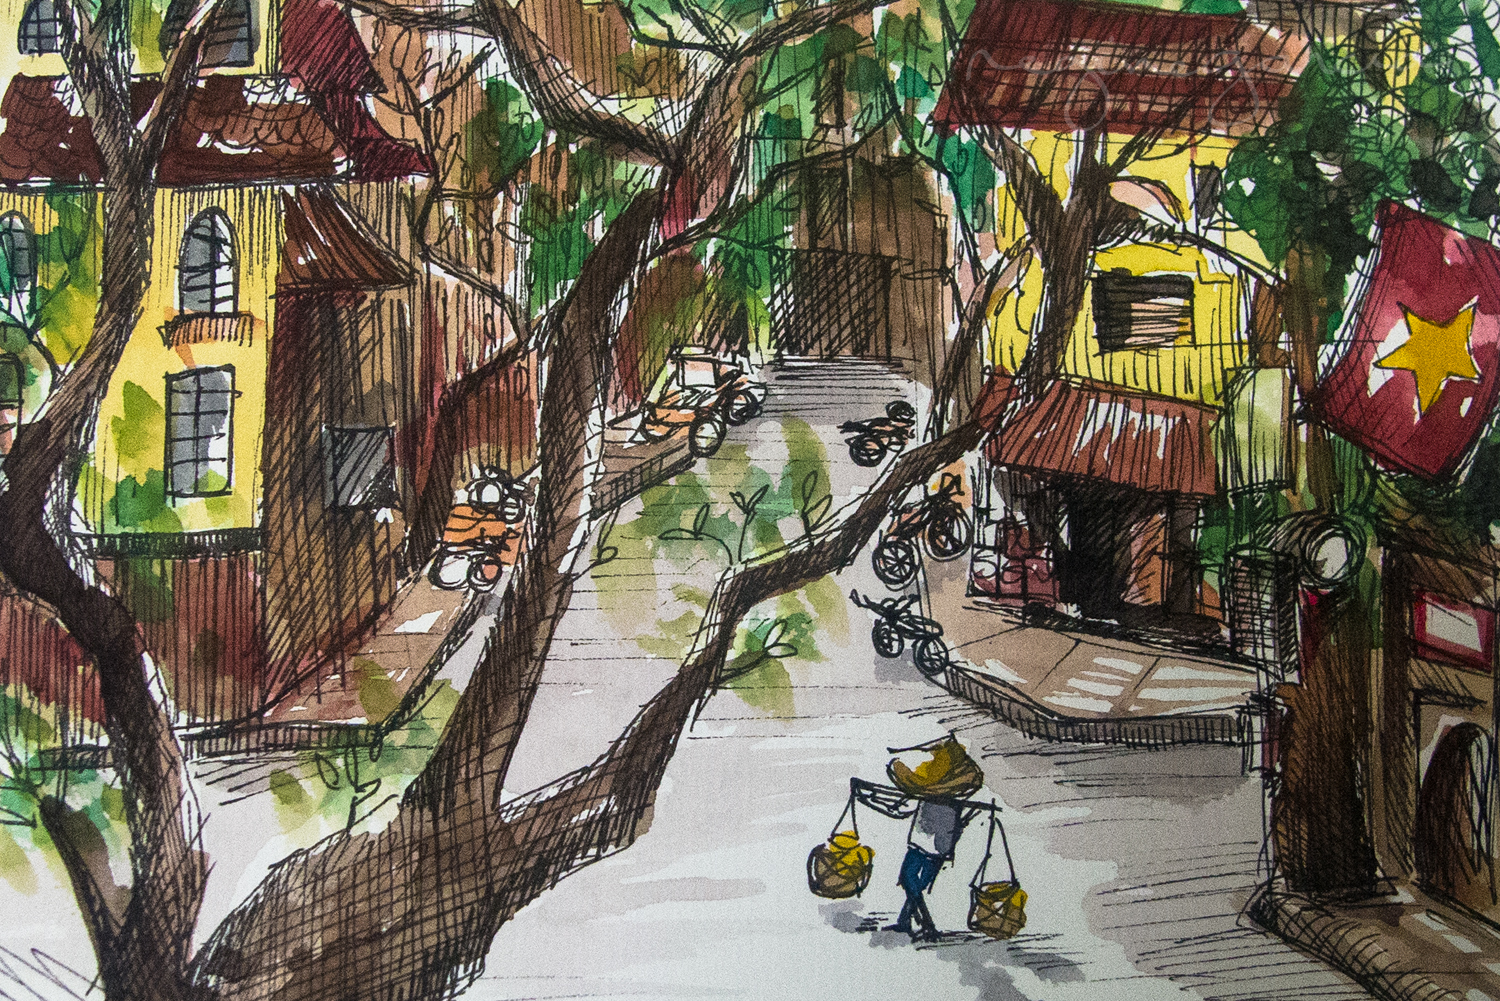 Watercolor and Ink rendering from Hanoi Old Quarter rapid sketching.